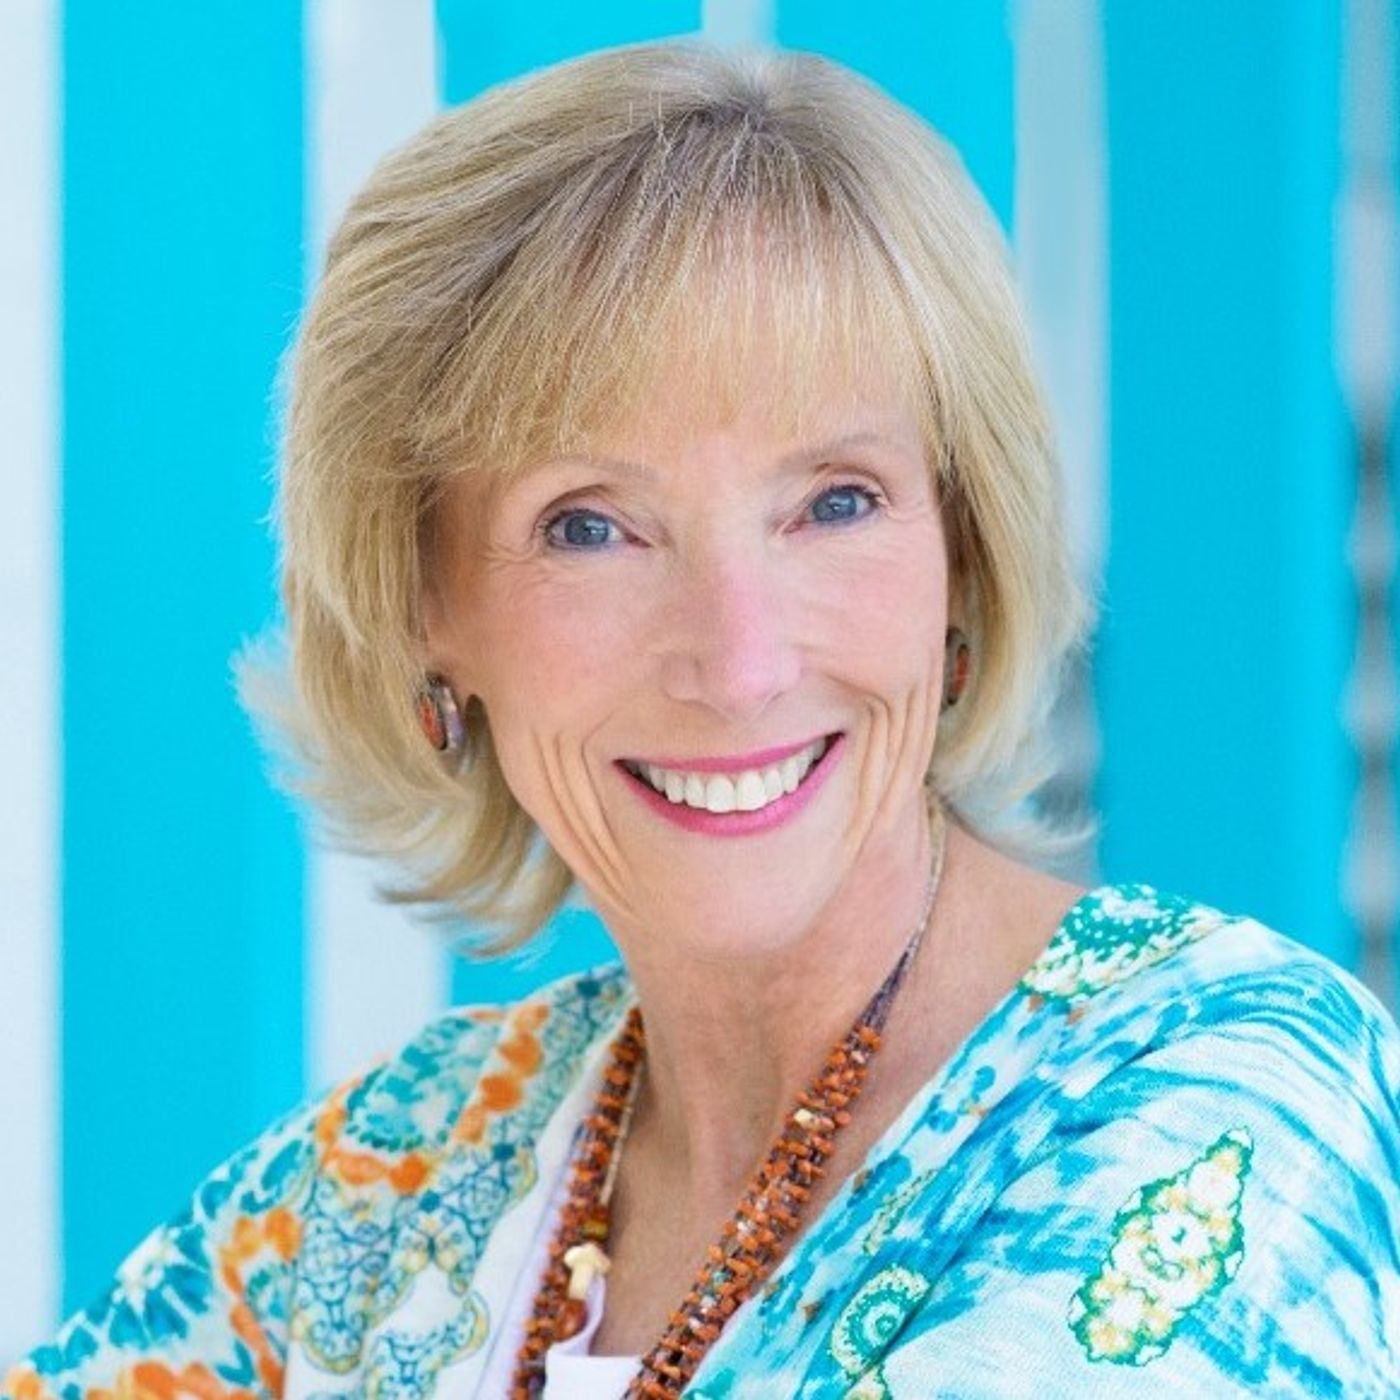 A conversation with Lisa Barnett about the Akashic Records.